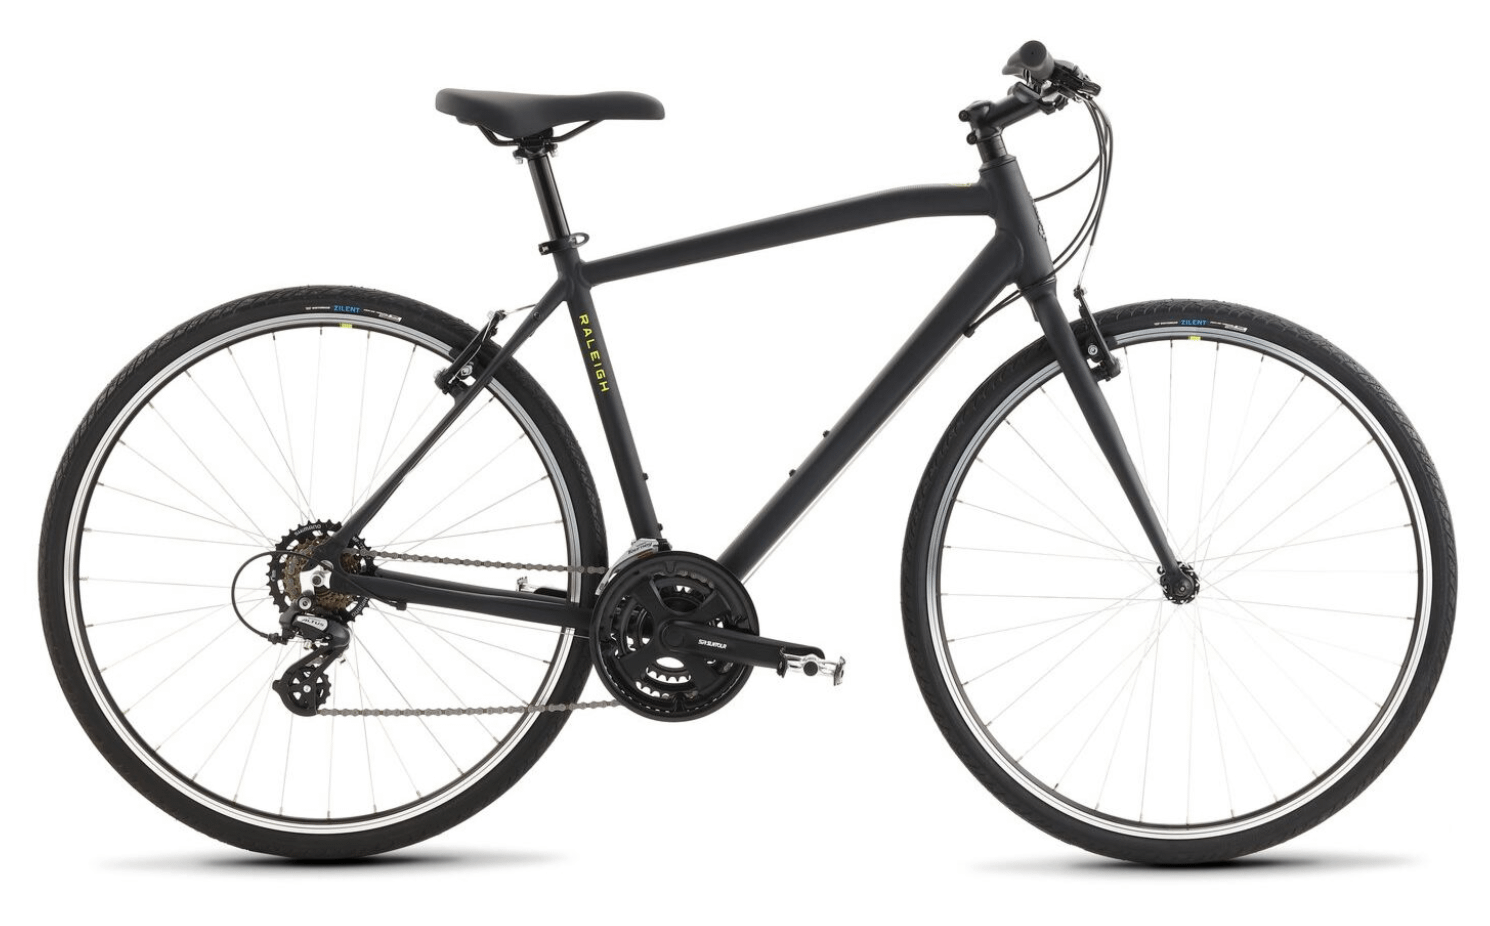 a black raleigh cadent bicycle with yellow writing